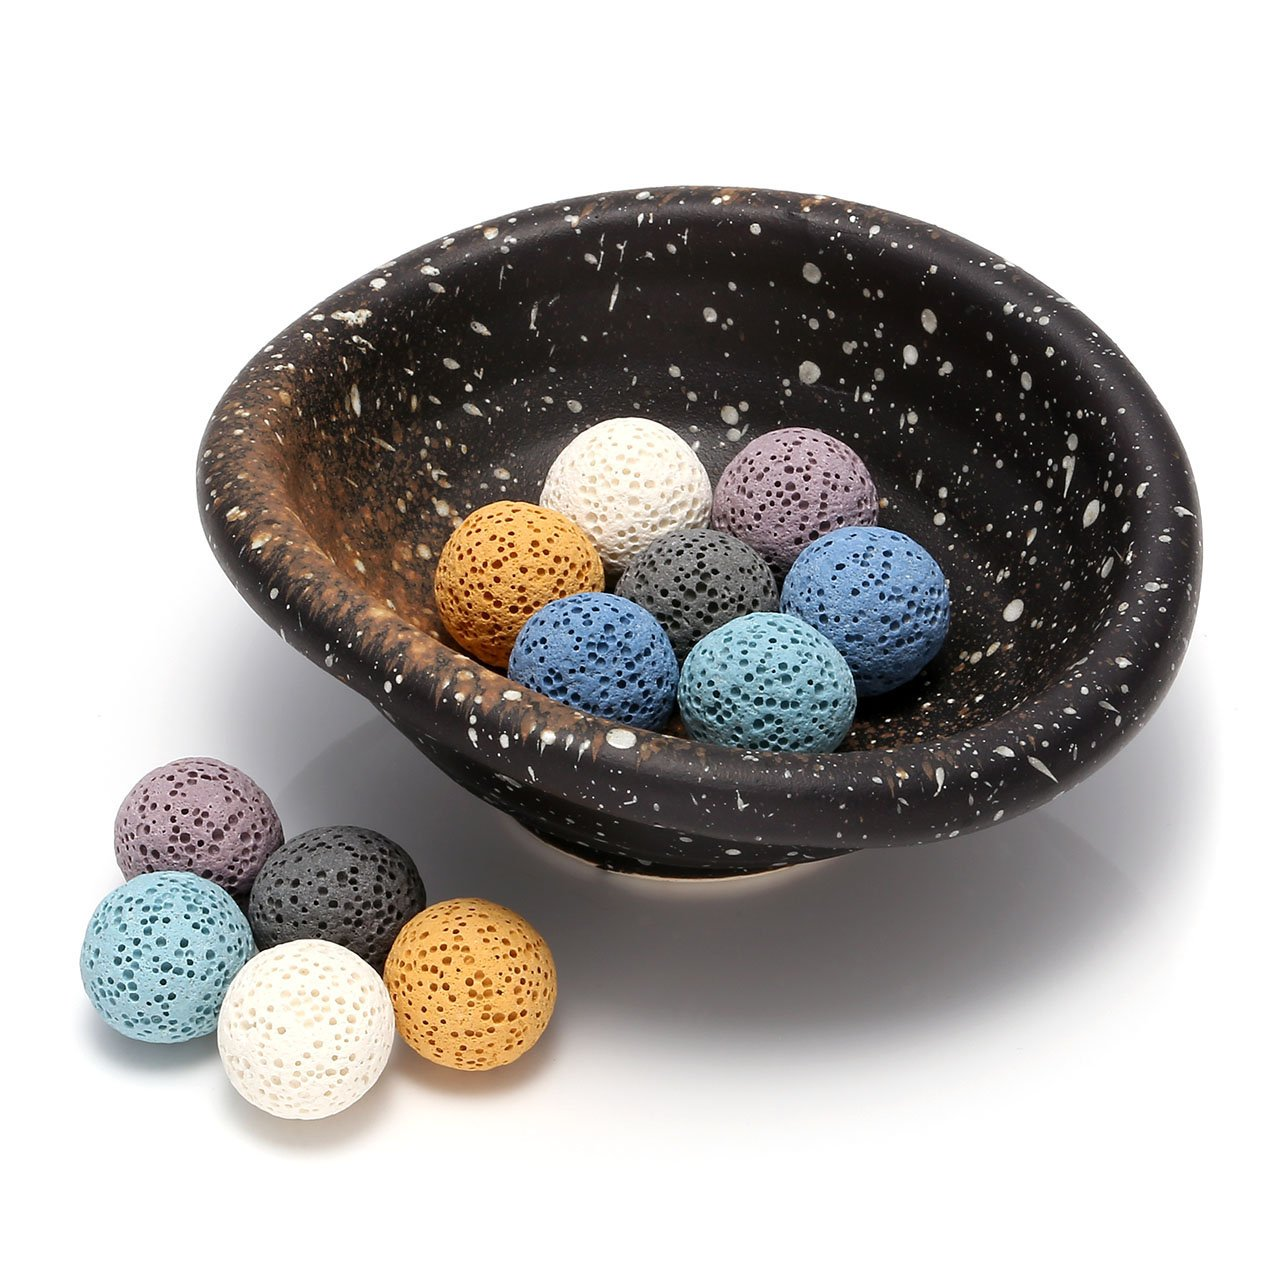 Top Plaza Lava Rock Gemstone Aromatherapy Essential Oil Diffuser Set - Oval Shape Ceramic Incense Burner/Ware/Holder/Bowl With 12Pcs Lava Stone Balls